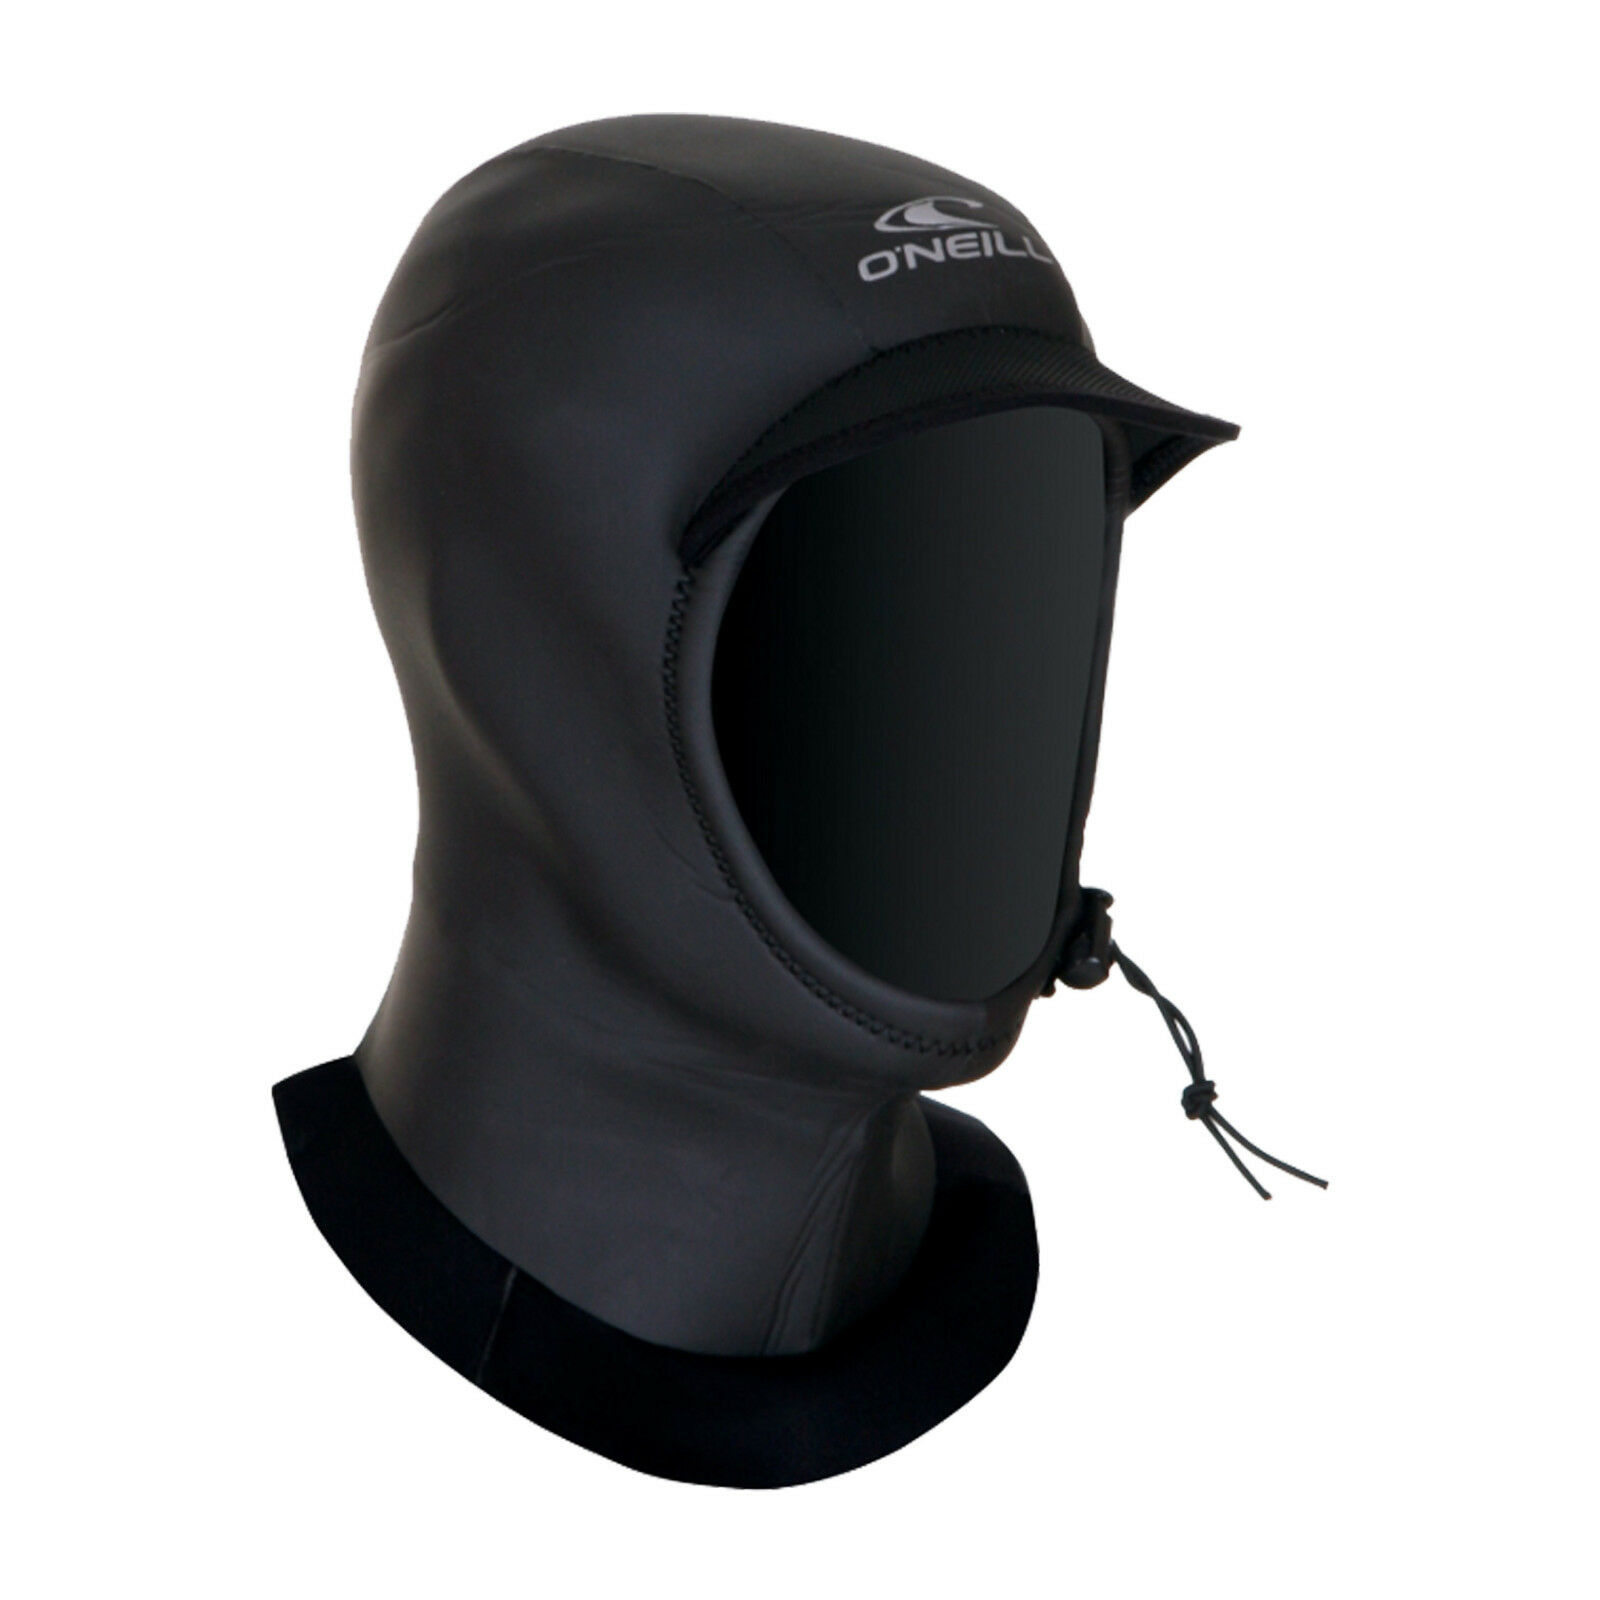 O'Neill Ultraseal 3mm neoprene hood - 2018-19